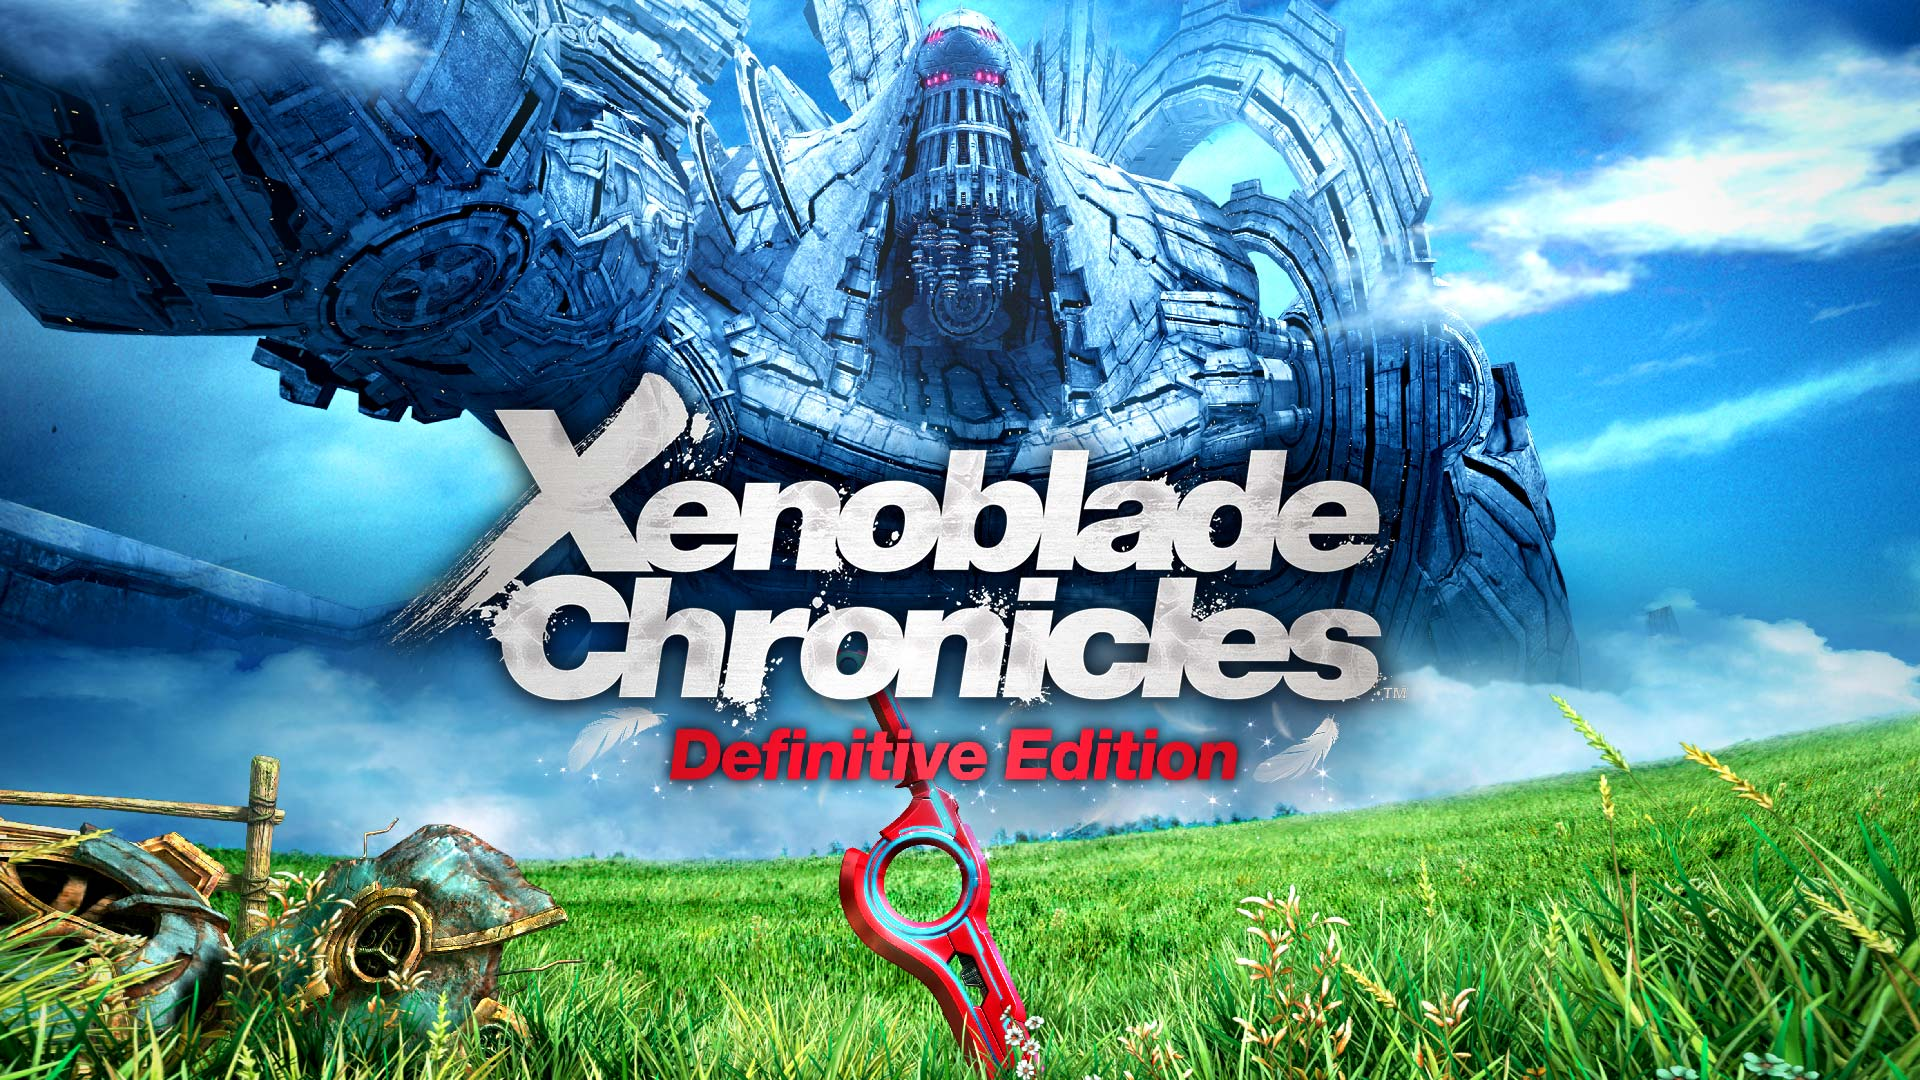 xenoblade chronicles, change difficulty